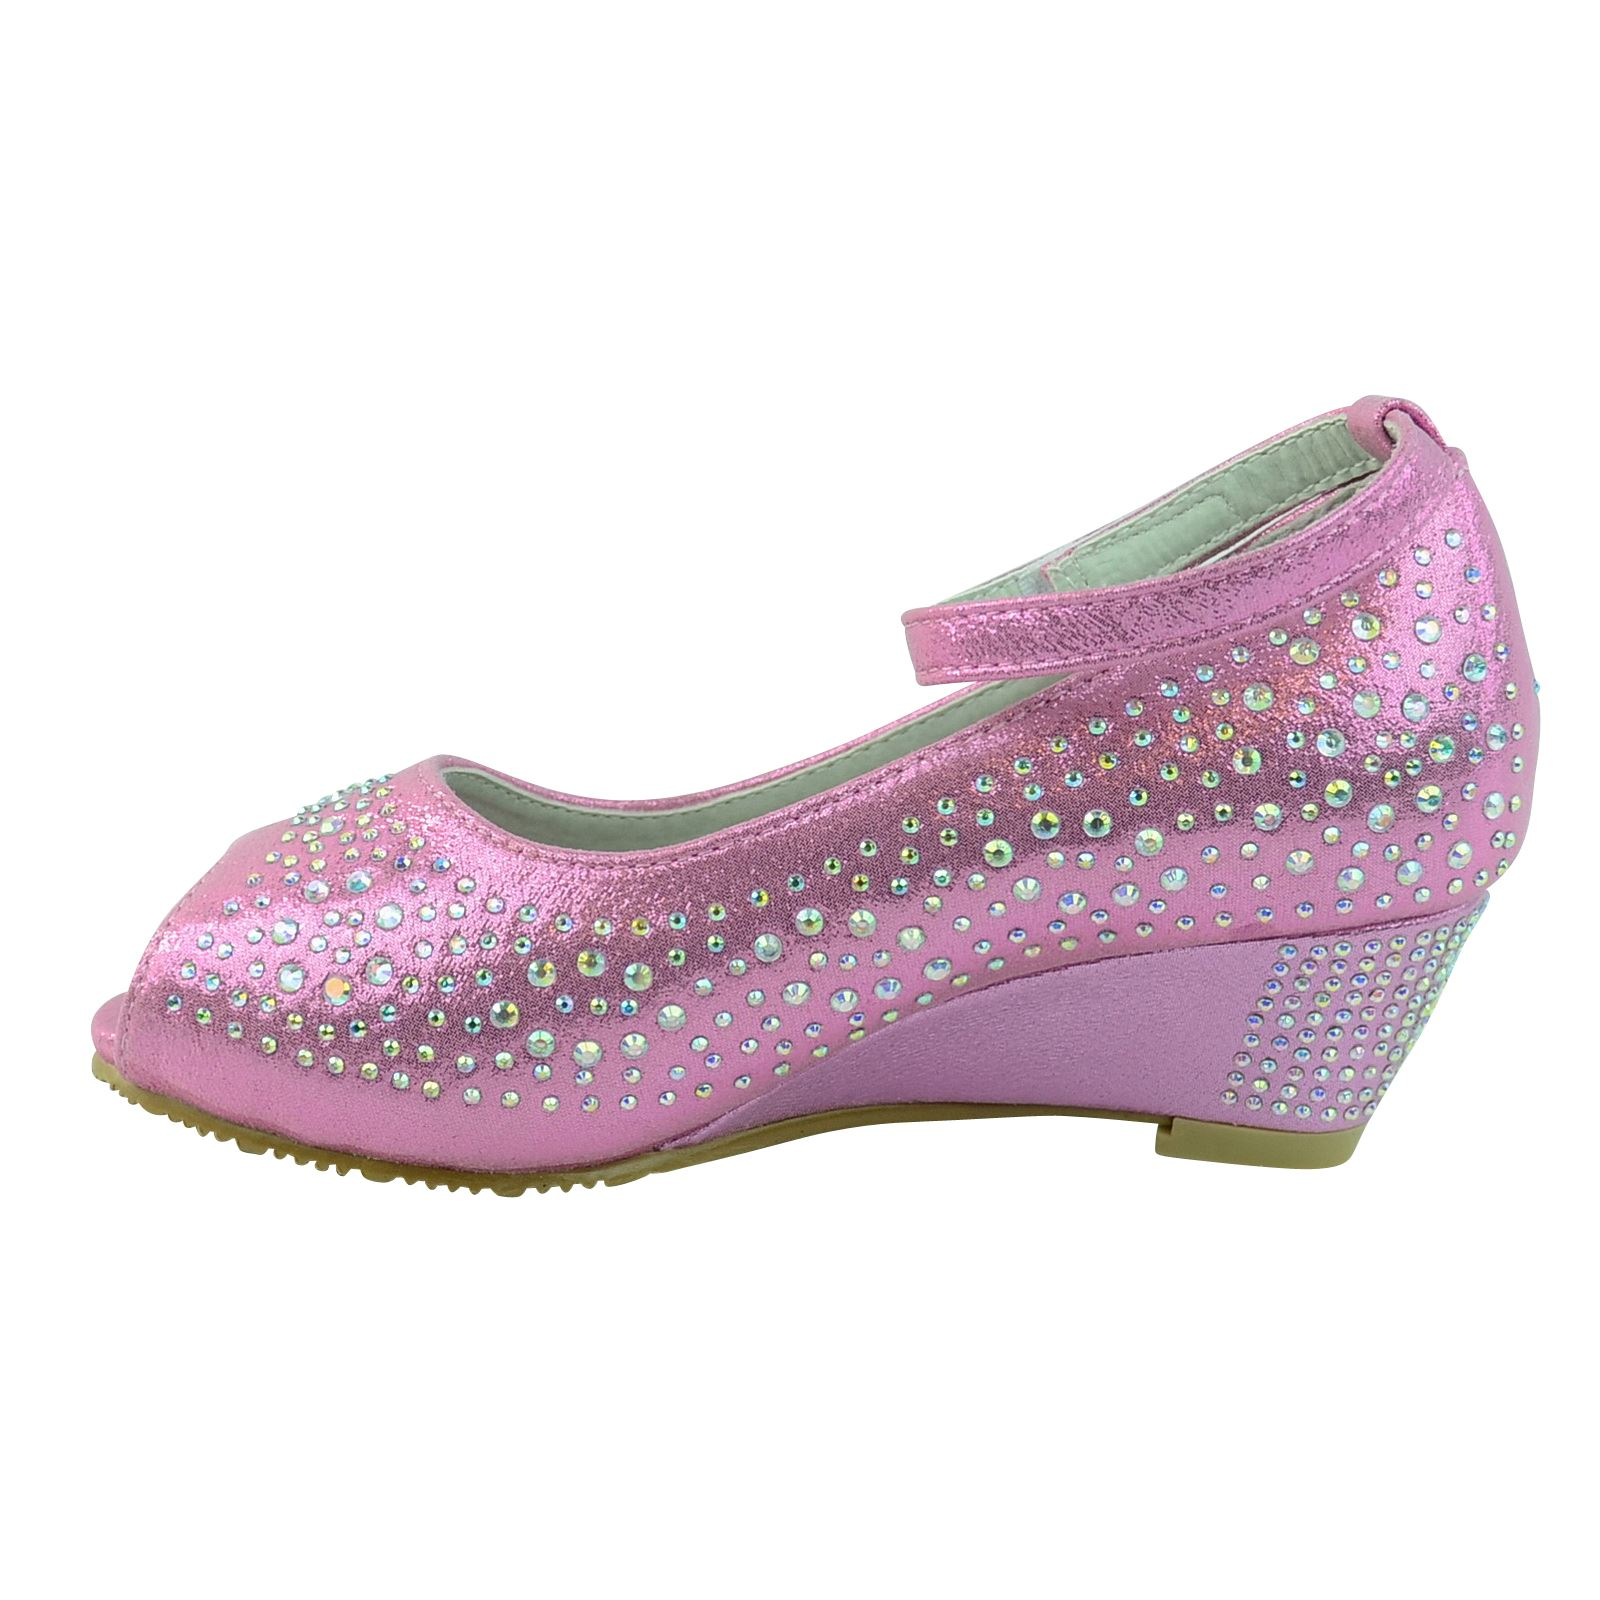 childrens wedge heel wedding style